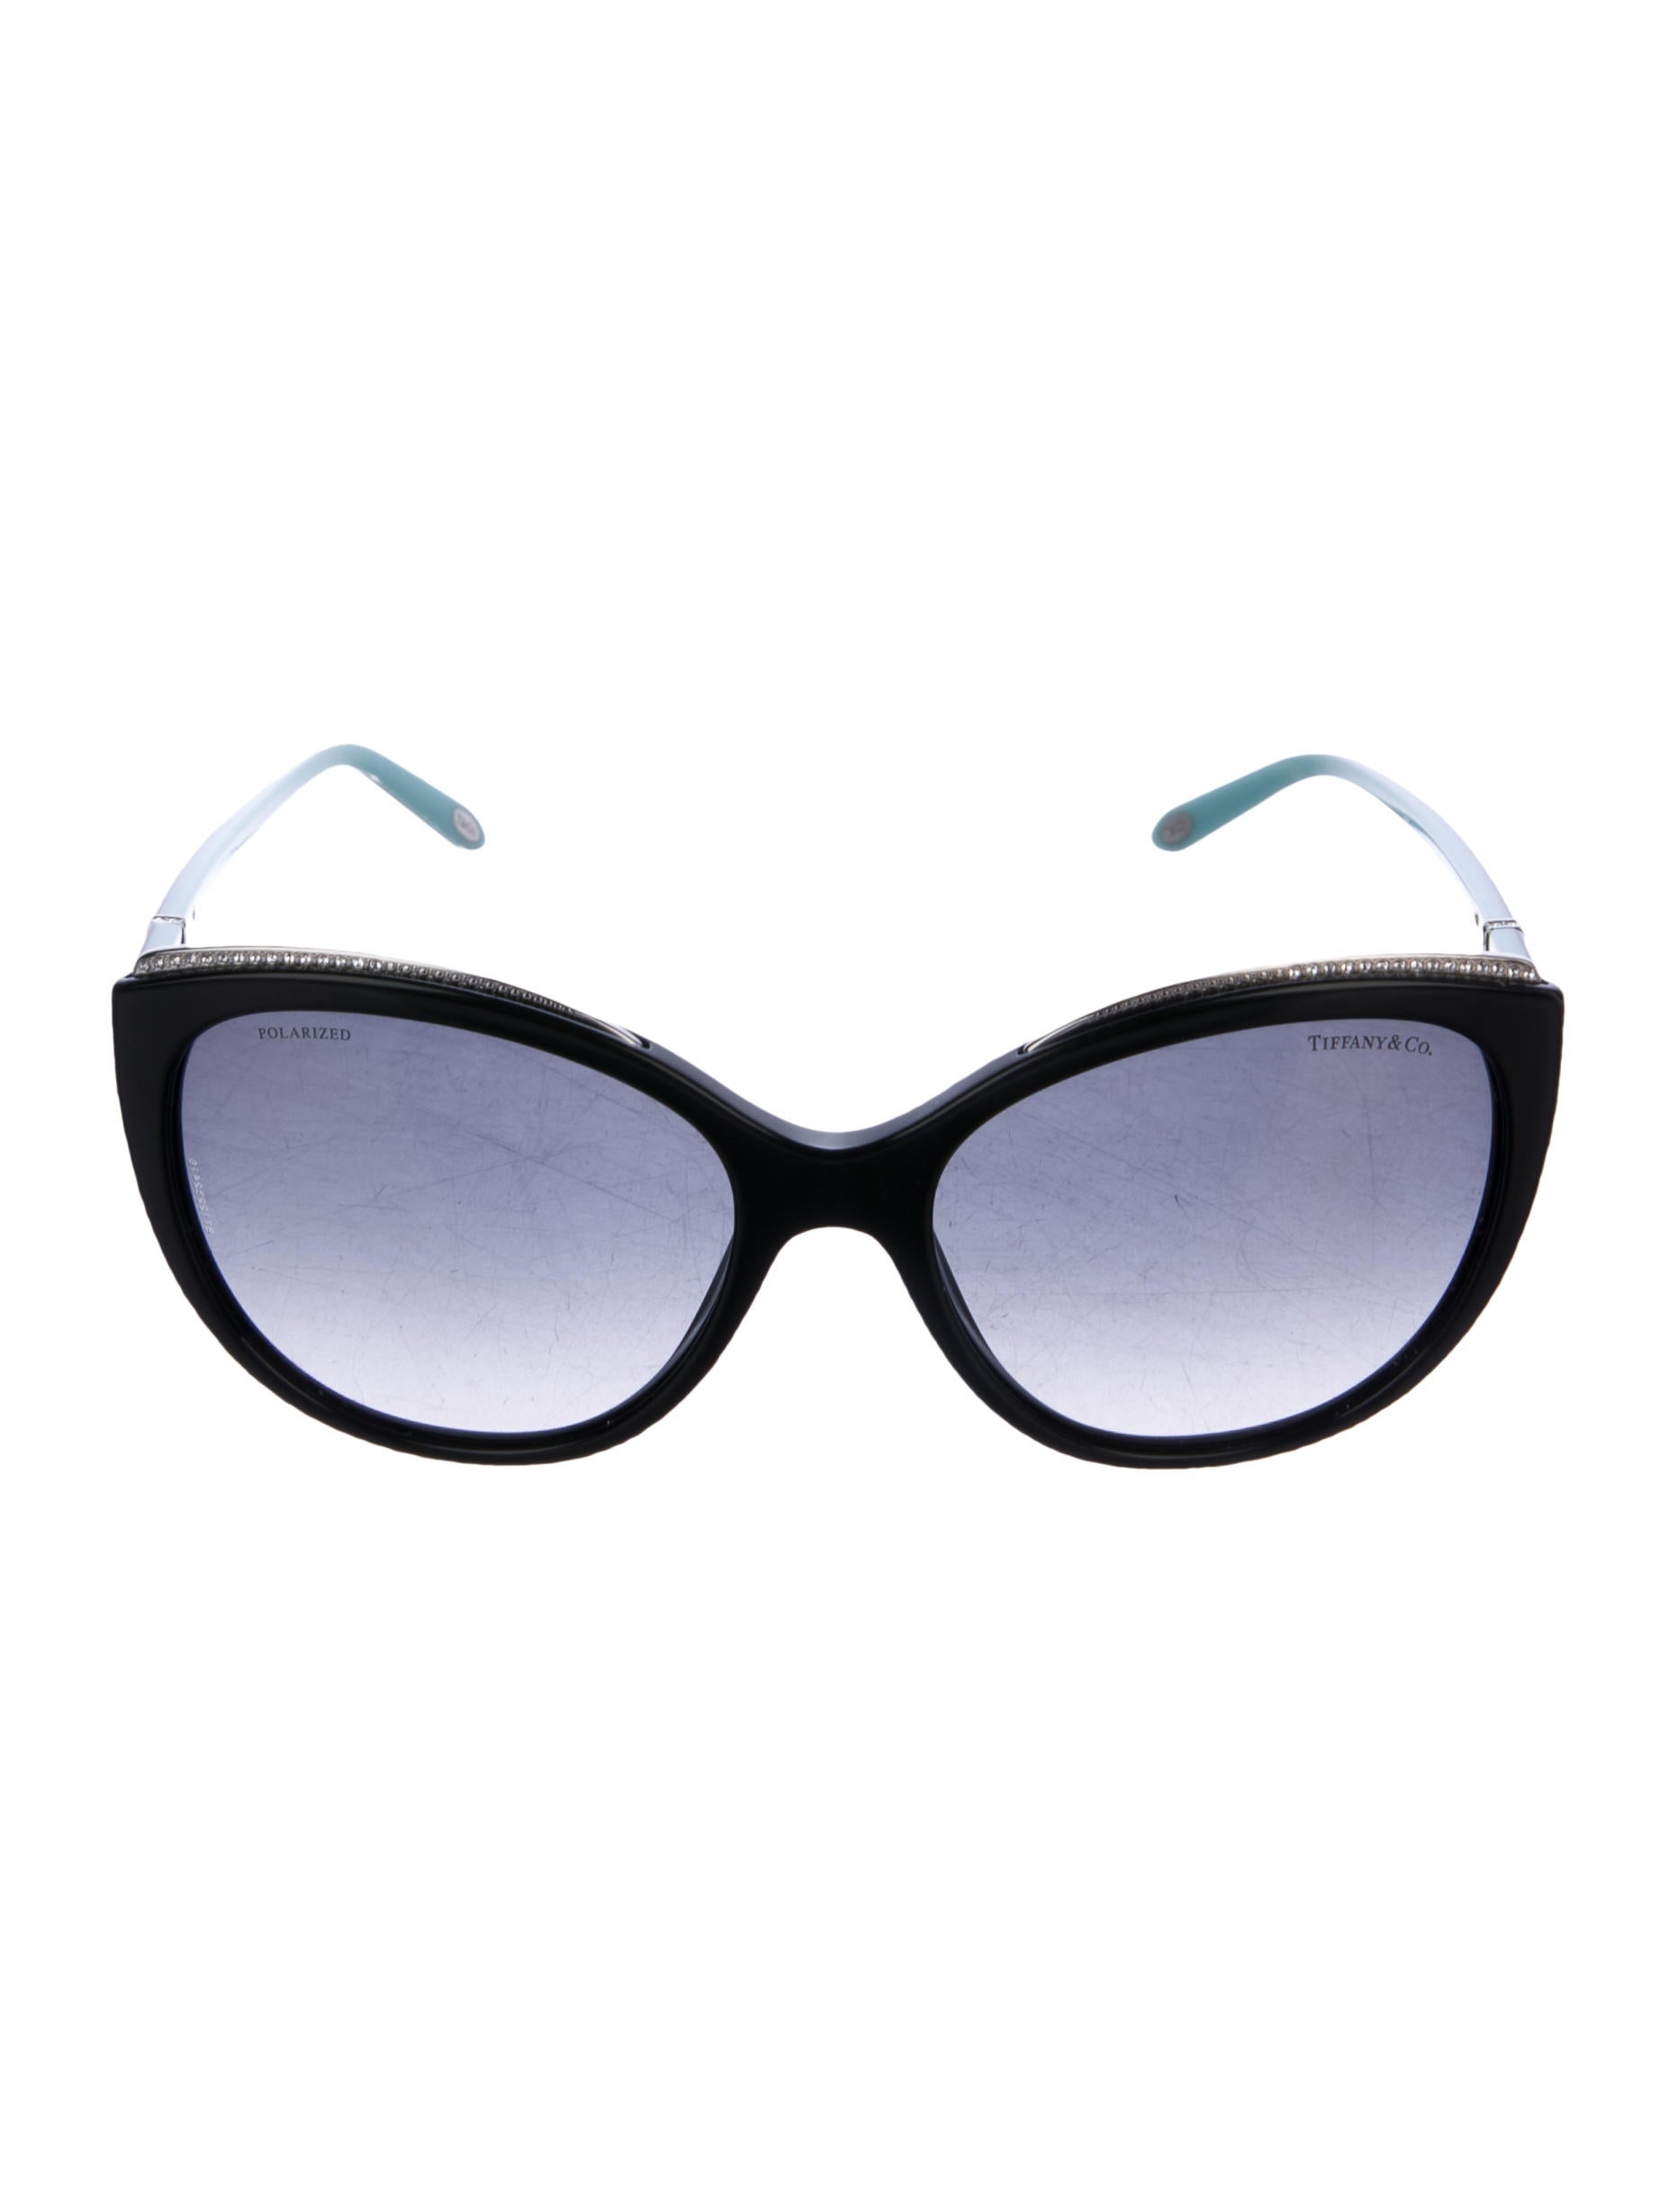 2e6420438a Tiffany   Co. Crystal-Embellished Cat-Eye Sunglasses - Accessories ...